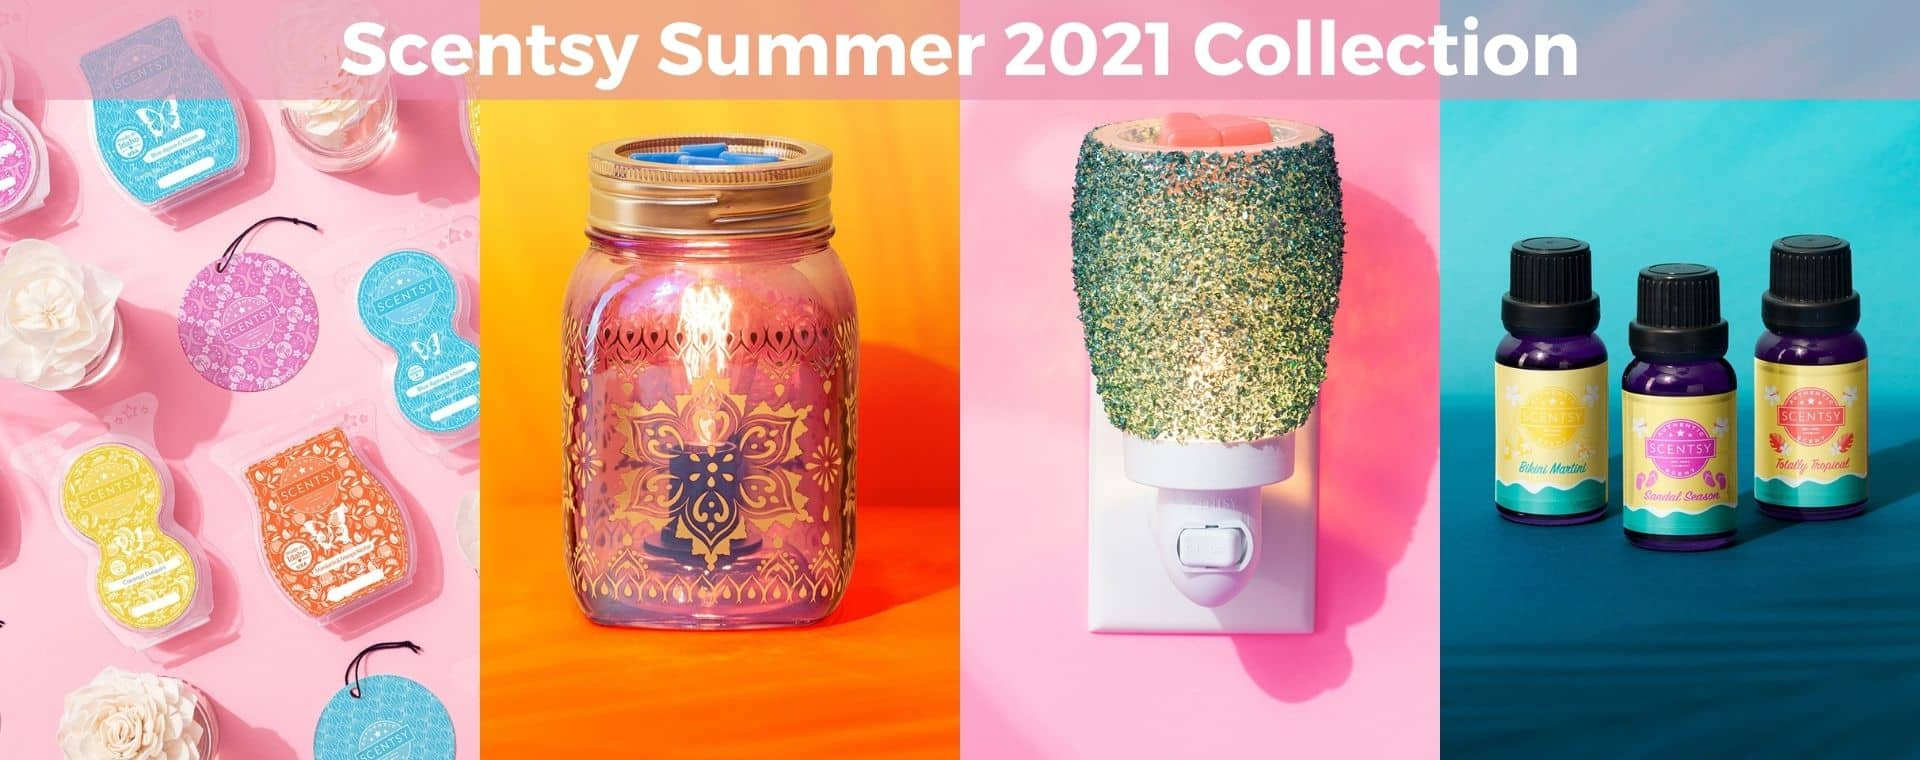 Scentsy Summer 2021 Collection Shop 51021 | NEW! Scentsy 2021 Summer Collection | Shop Now